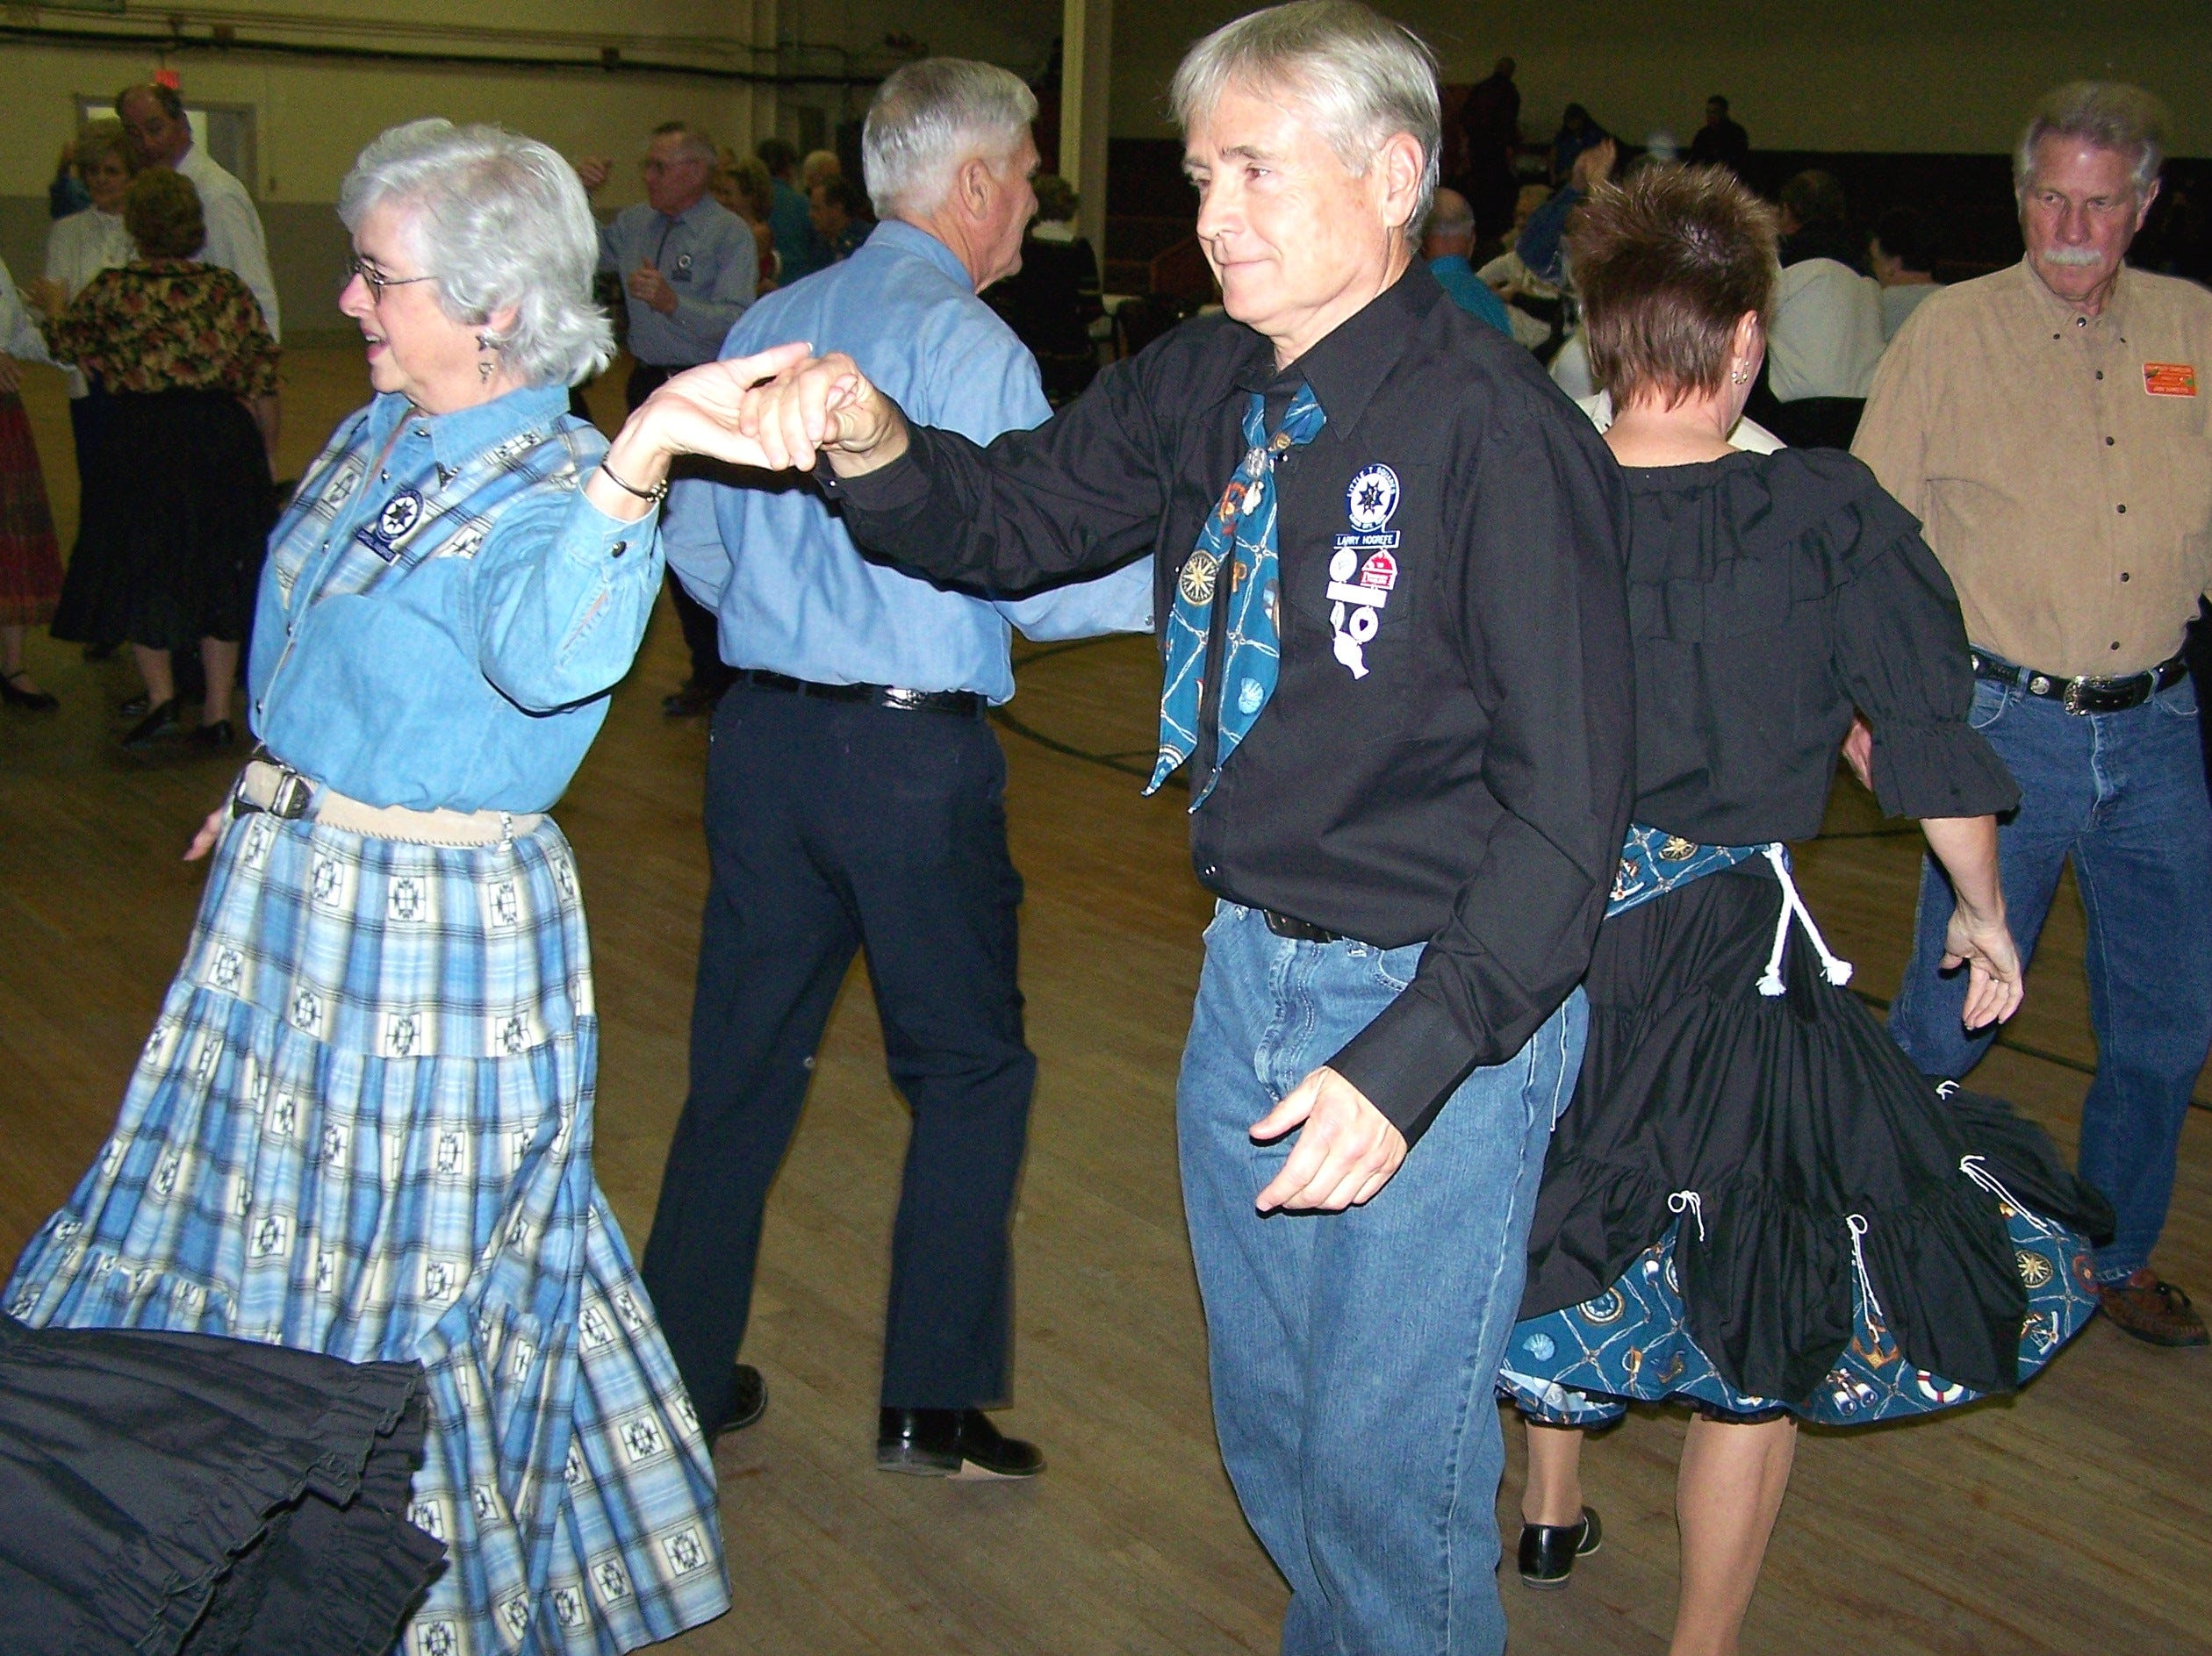 Little T Squares dancers Carol McBride and Larry Hogrefe execute a 'partner trade' maneuver during the Thanksgiving dinner and dance.